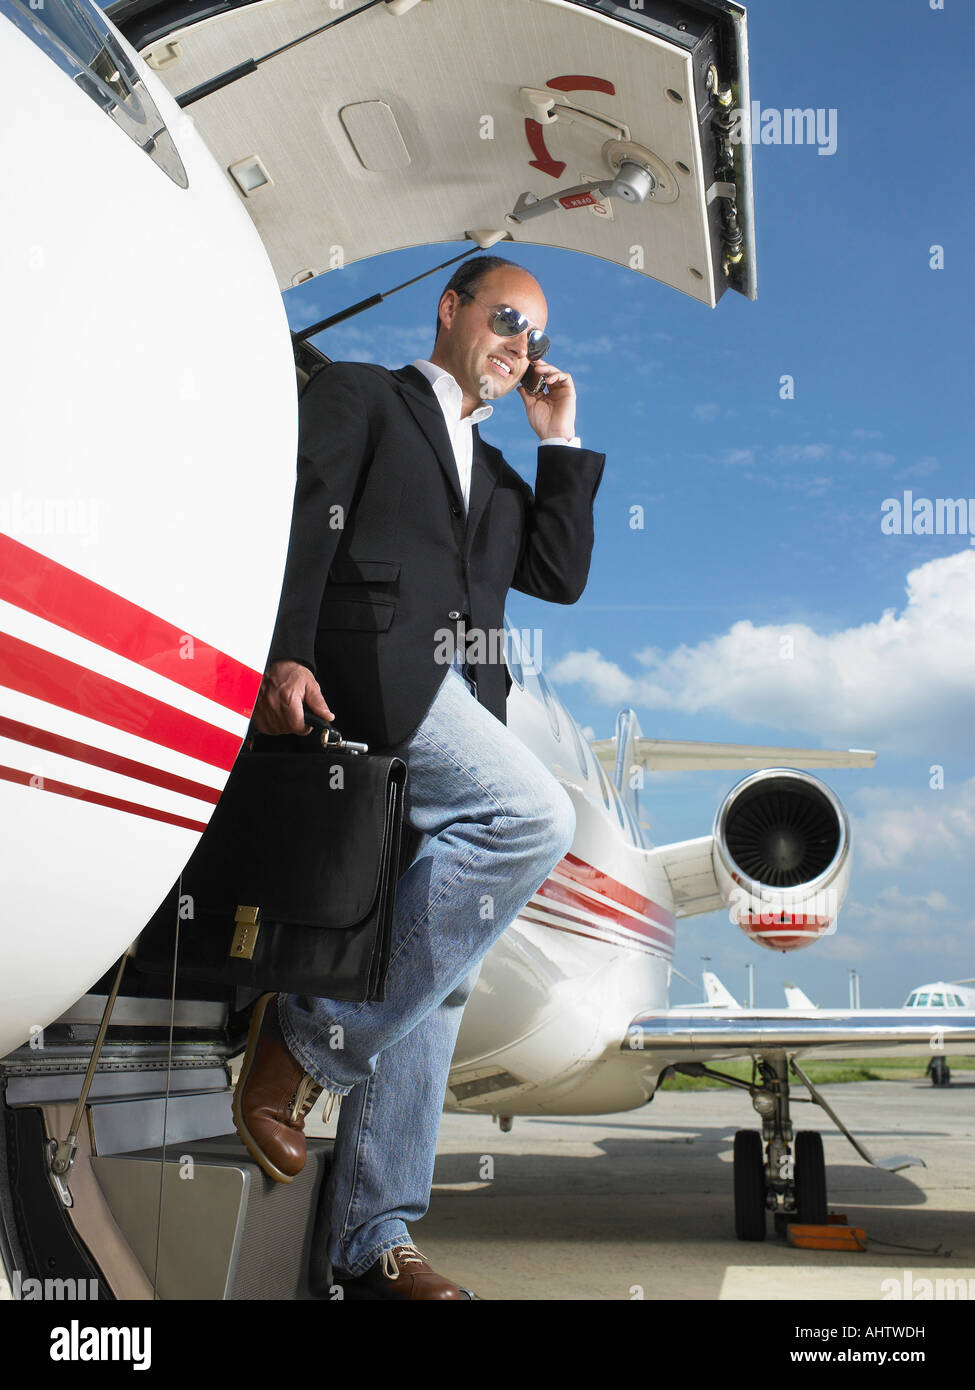 Casual businessman exiting private plane while on phone. - Stock Image